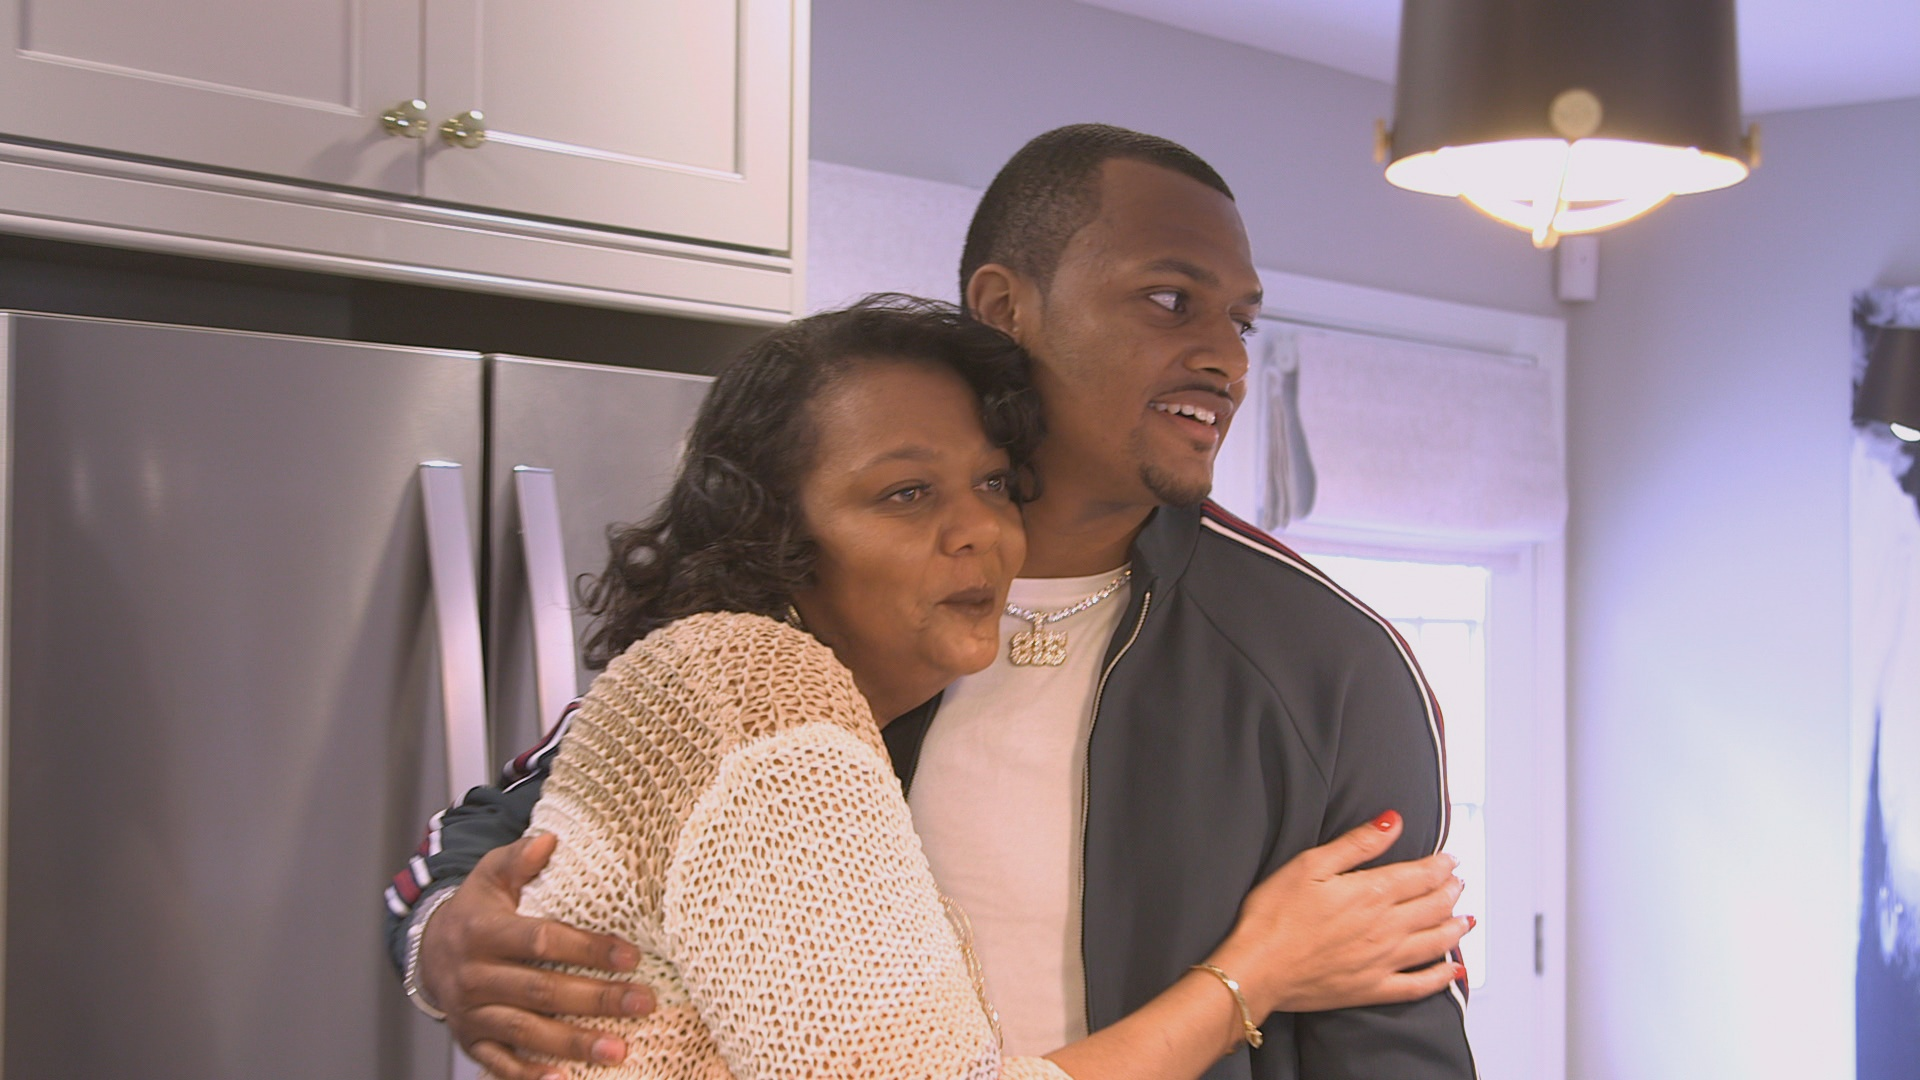 Texans Qb Deshaun Watson Surprises Mother With A My Houzz Makeover